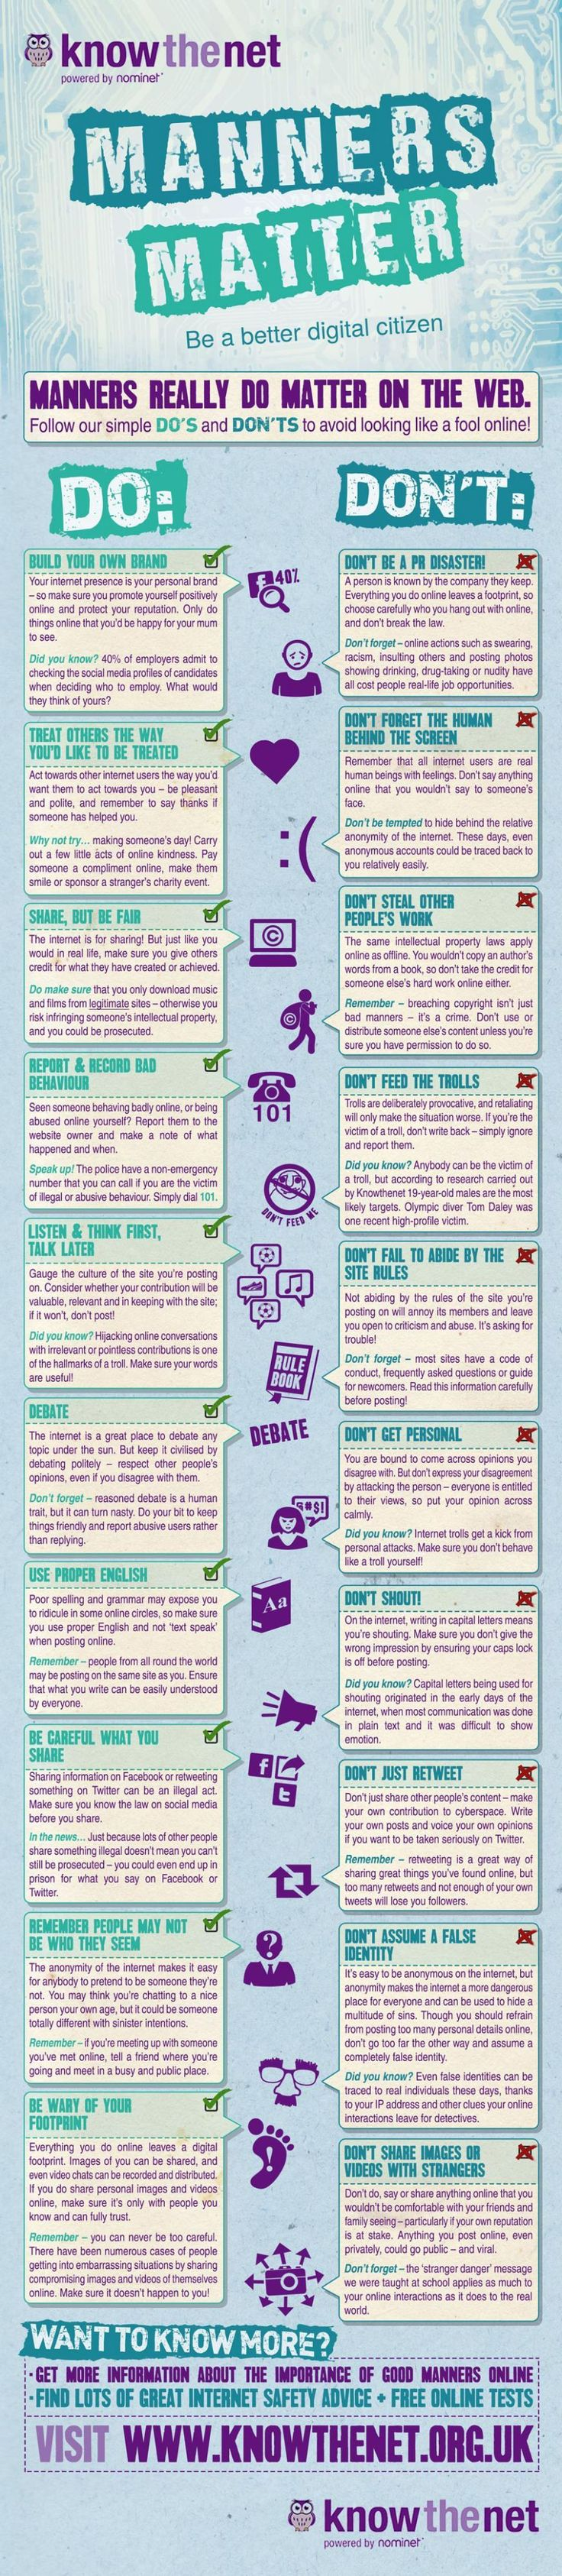 Manners Matter  This chart of do's and don'ts provides very detailed examples of what to do and what not to do on the internet. It provides very recent social media examples and such that the students would relate to